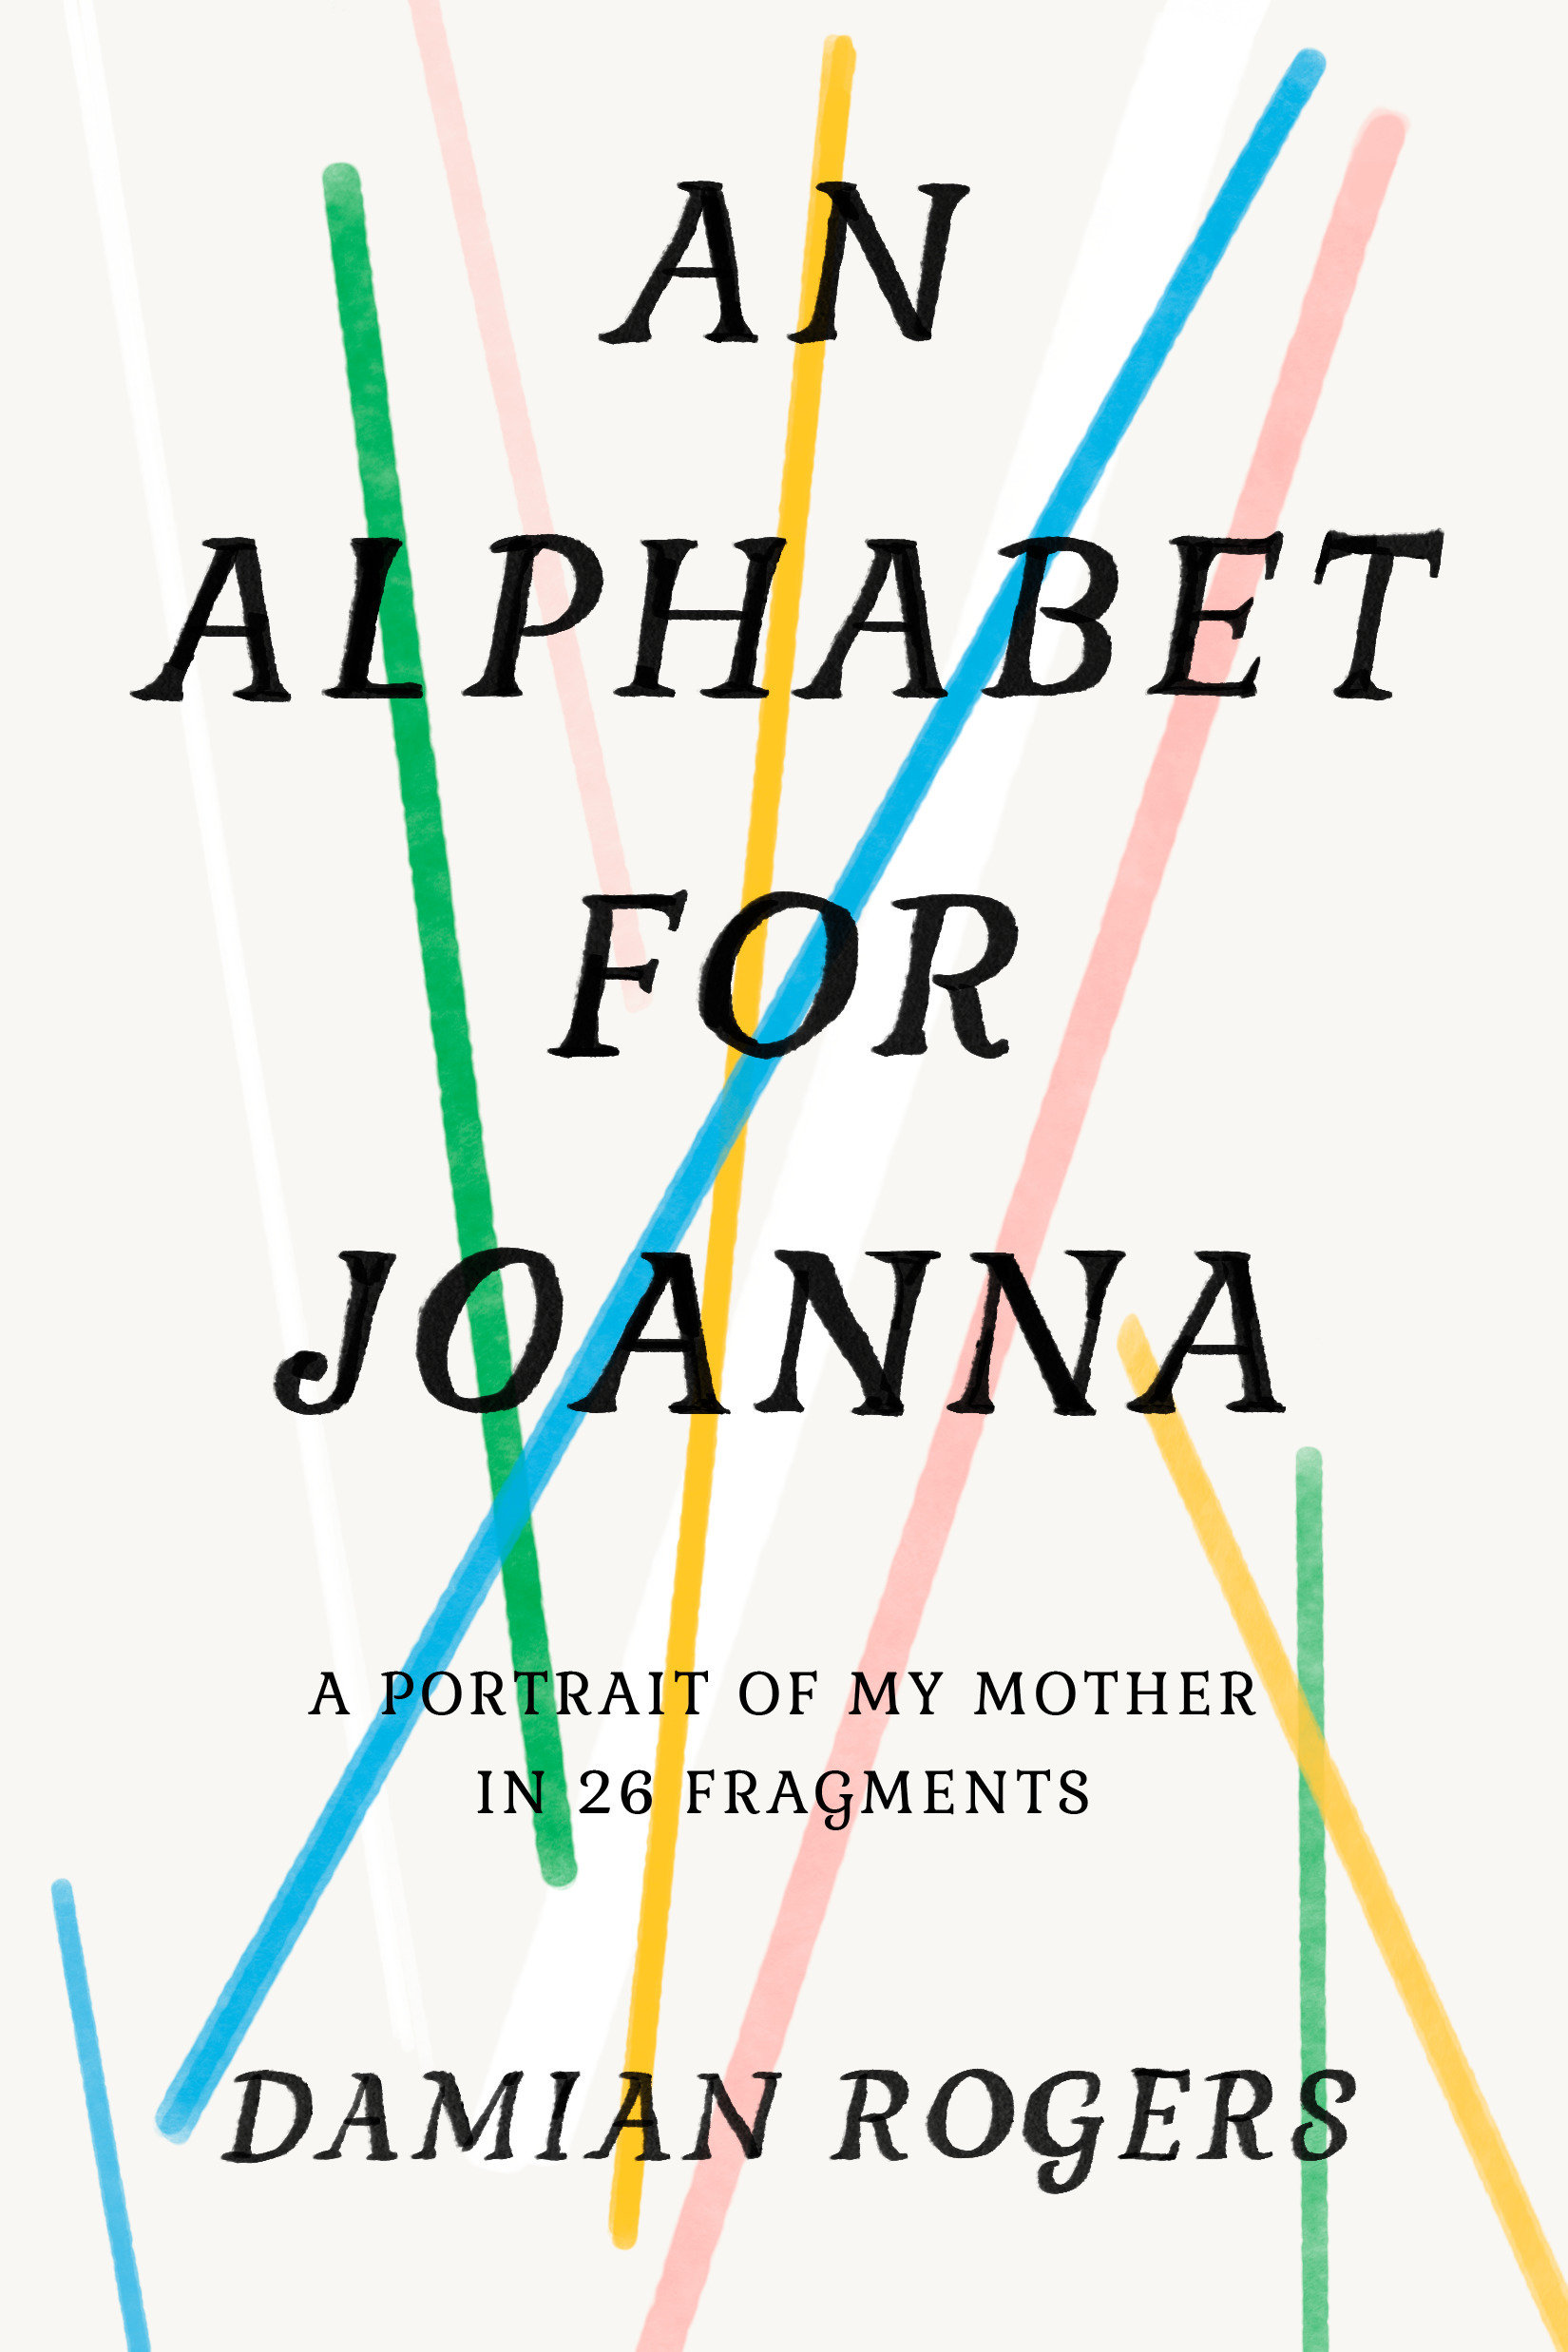 An Alphabet for Joanna A Portrait of My Mother in 26 Fragments